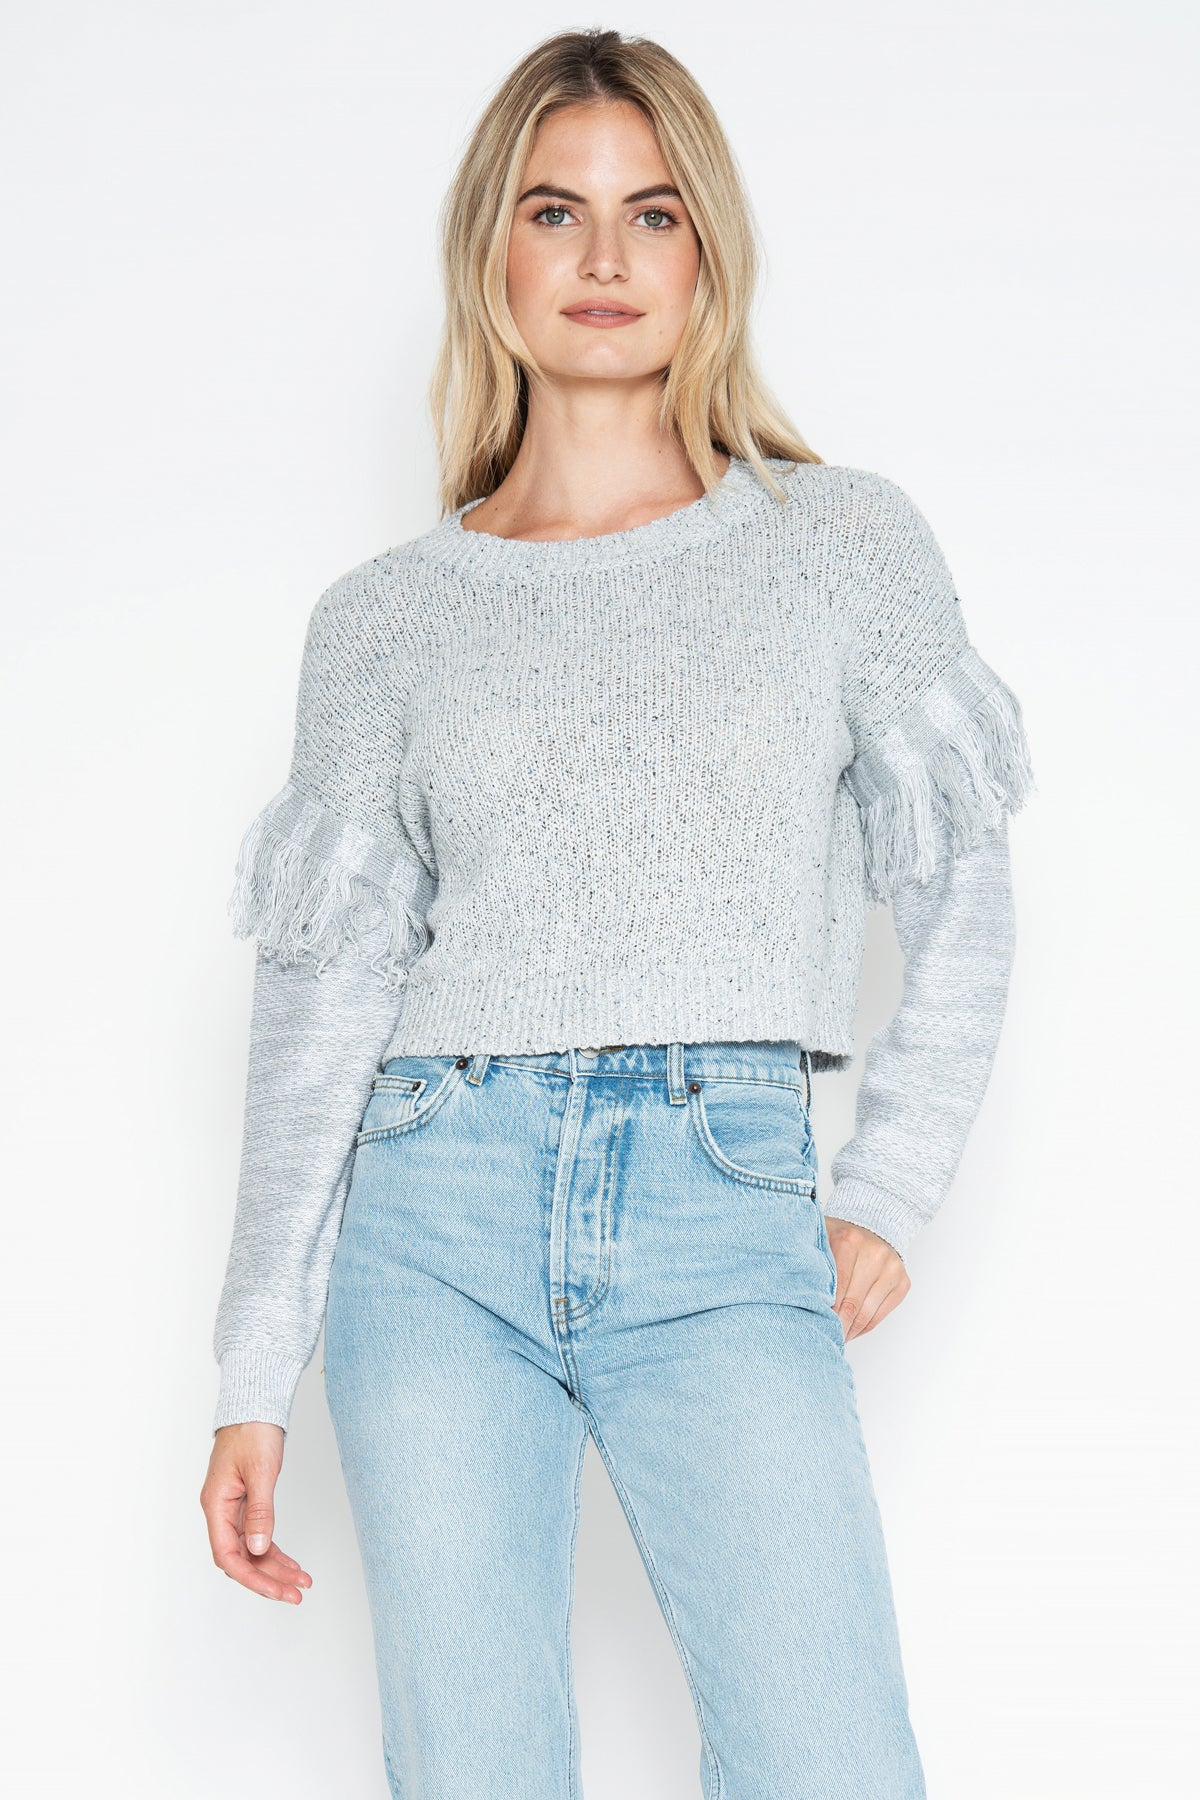 Cambridge Fringe Pullover - Silver/Denim Combo